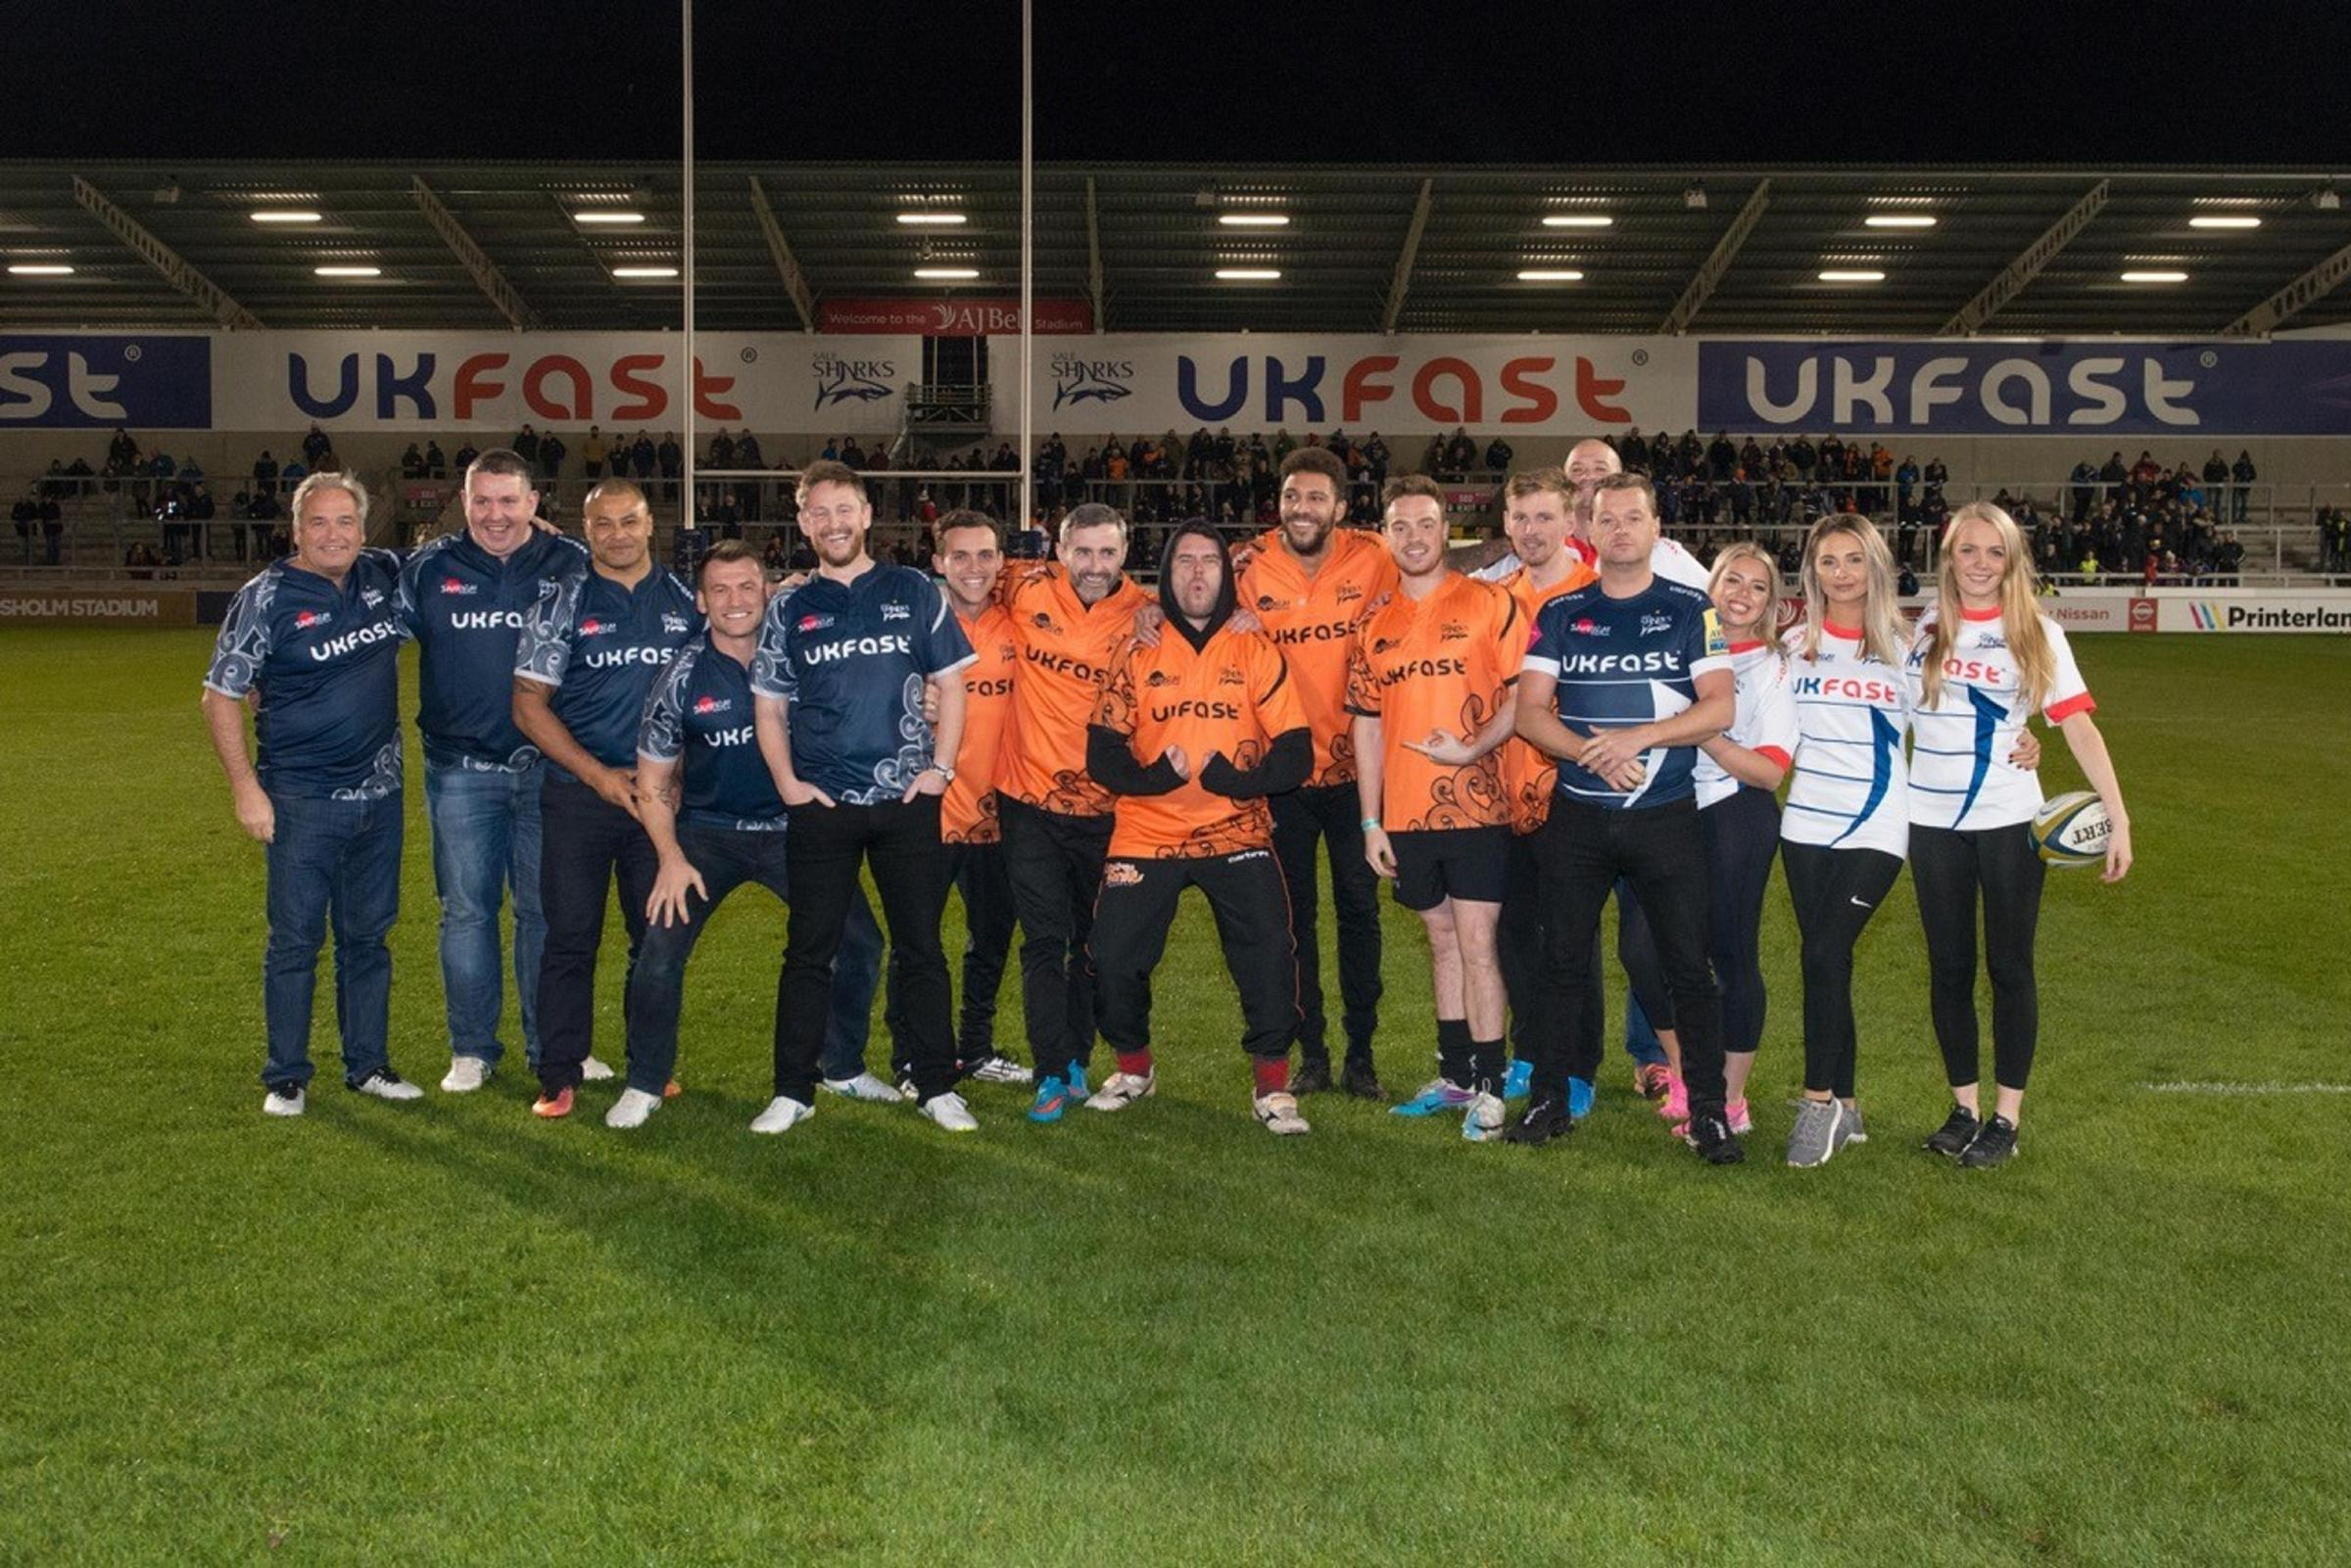 Sale Sharks have raised £15,000 for the Once Upon a Smile bereavement charity